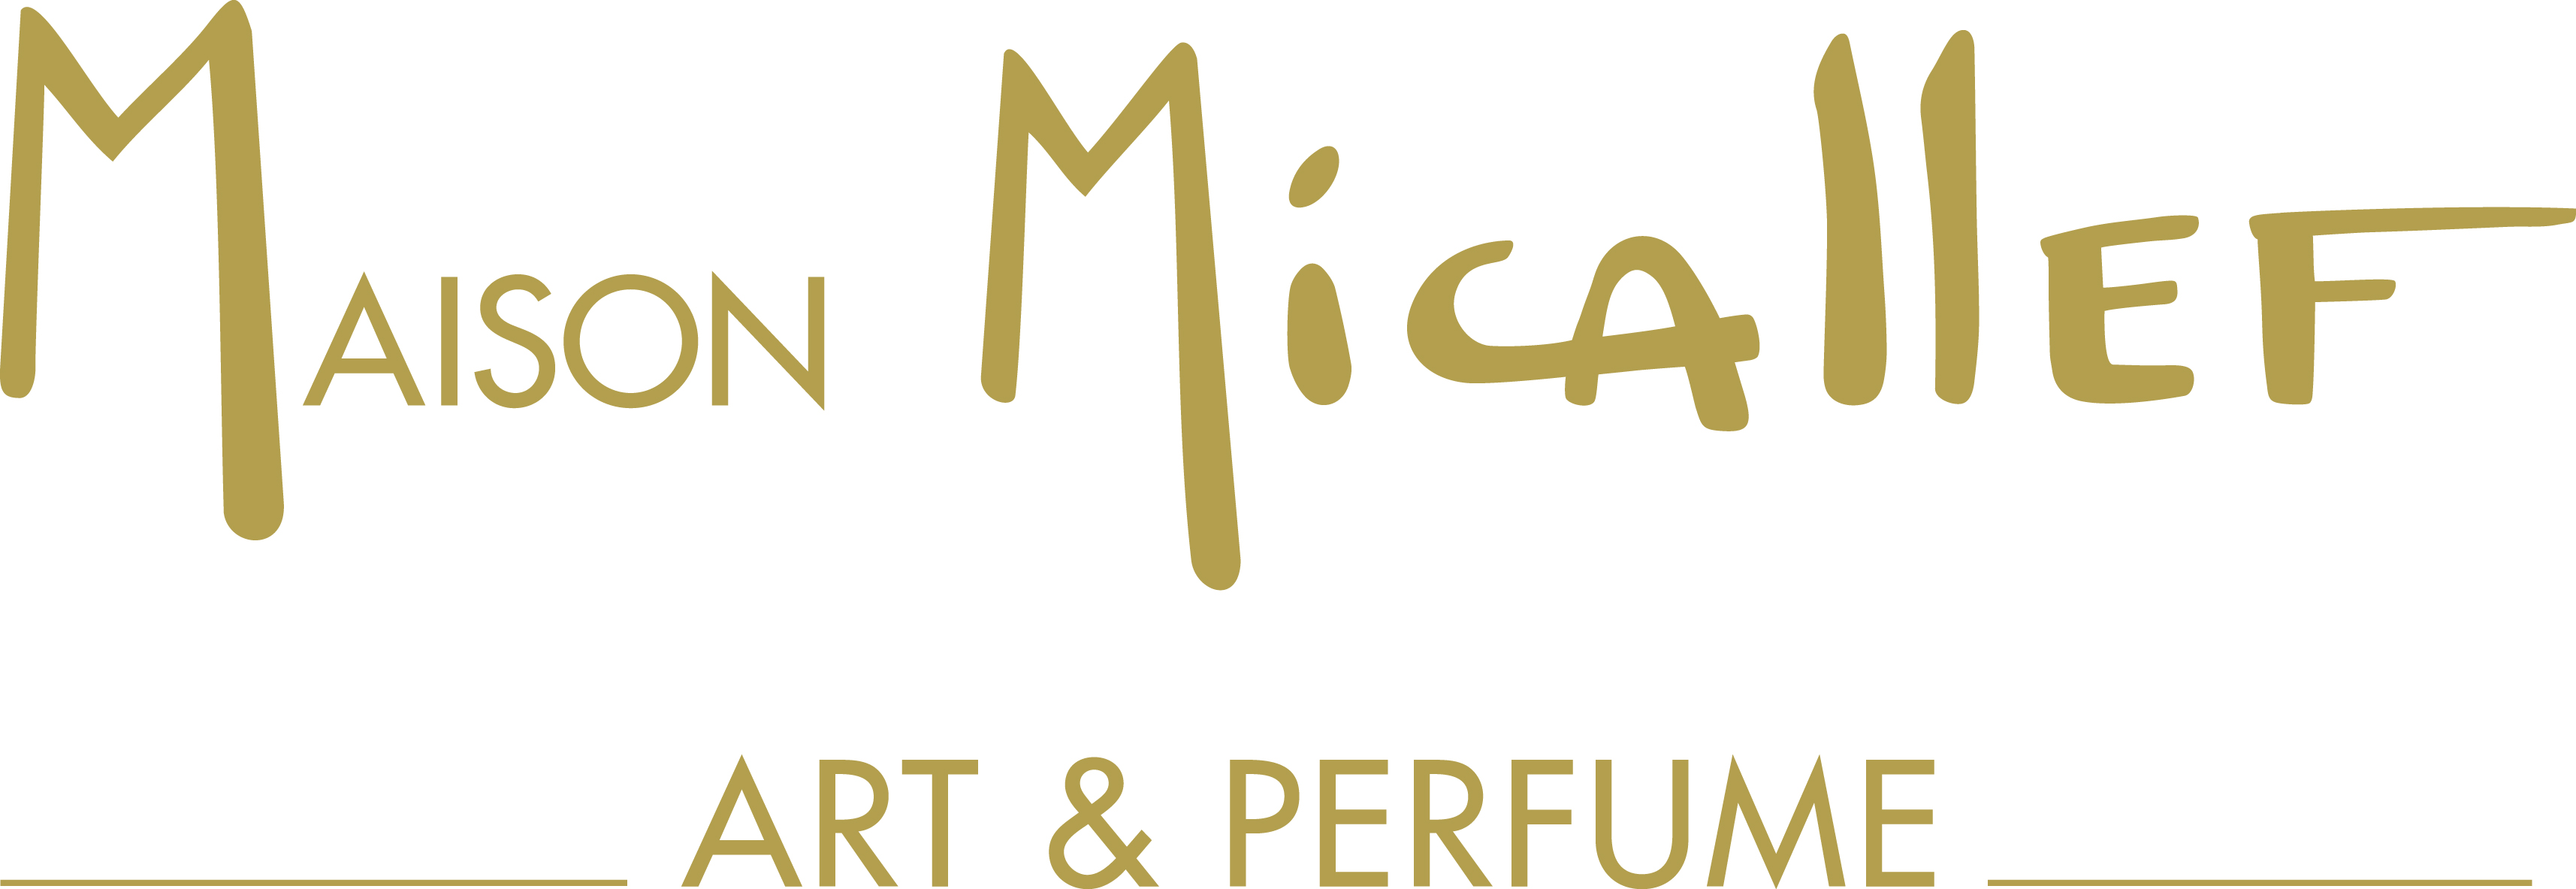 LOGO MAISON MICALLEF 2018 OR